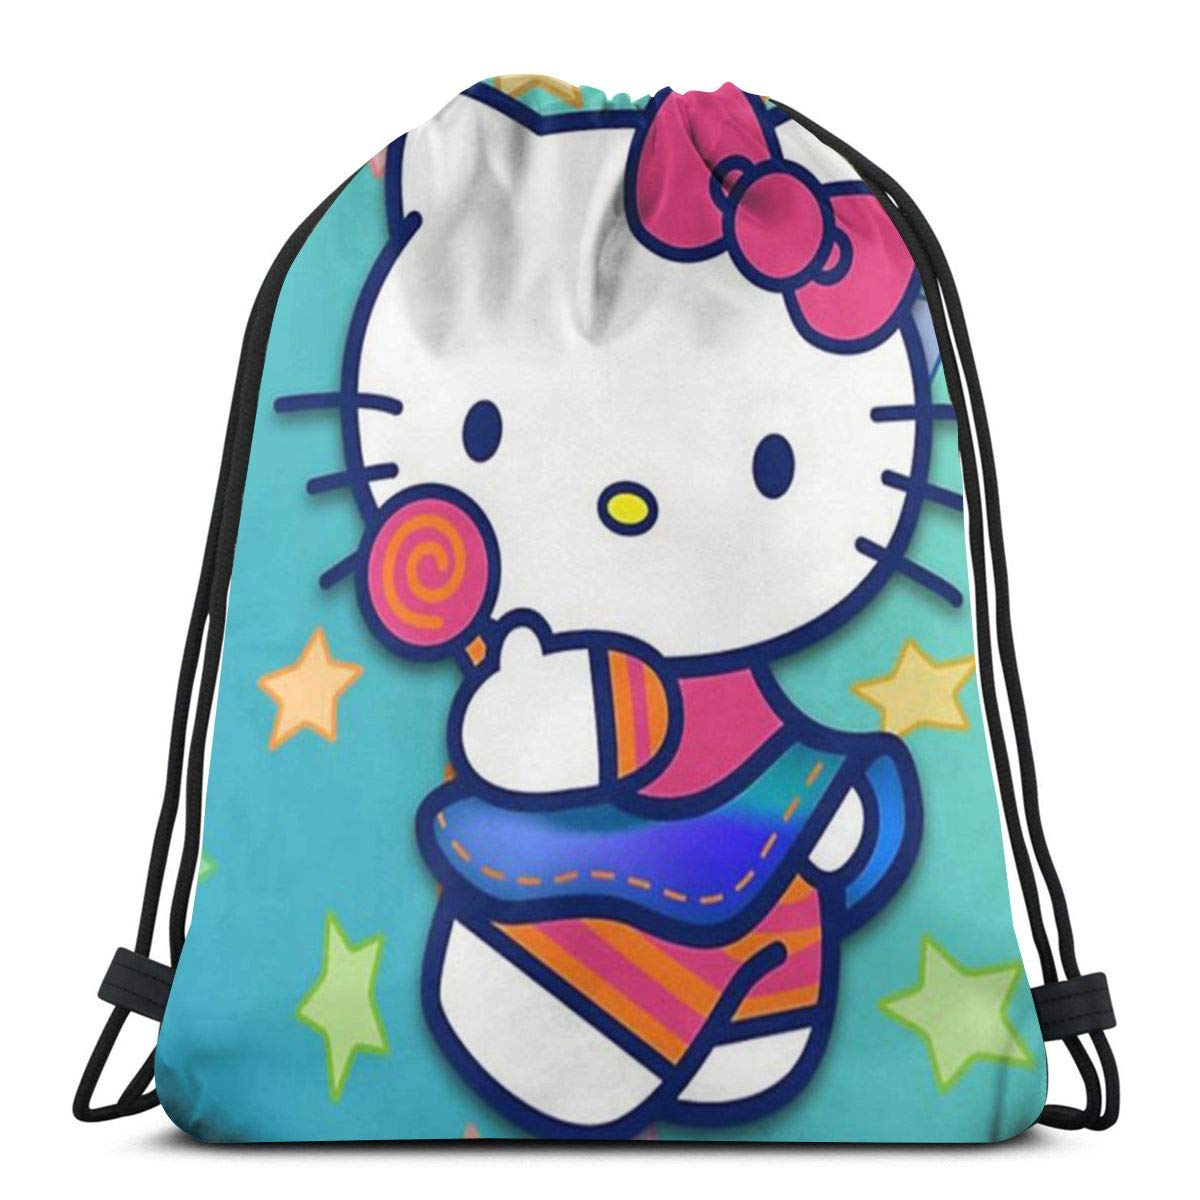 3a9fdd01e Amazon.com: MPJTJGWZ Classic Drawstring Bag-Colorful Hello Kitty Gym  Backpack Shoulder Bags Sport Storage Bag for Man Women: Home & Kitchen